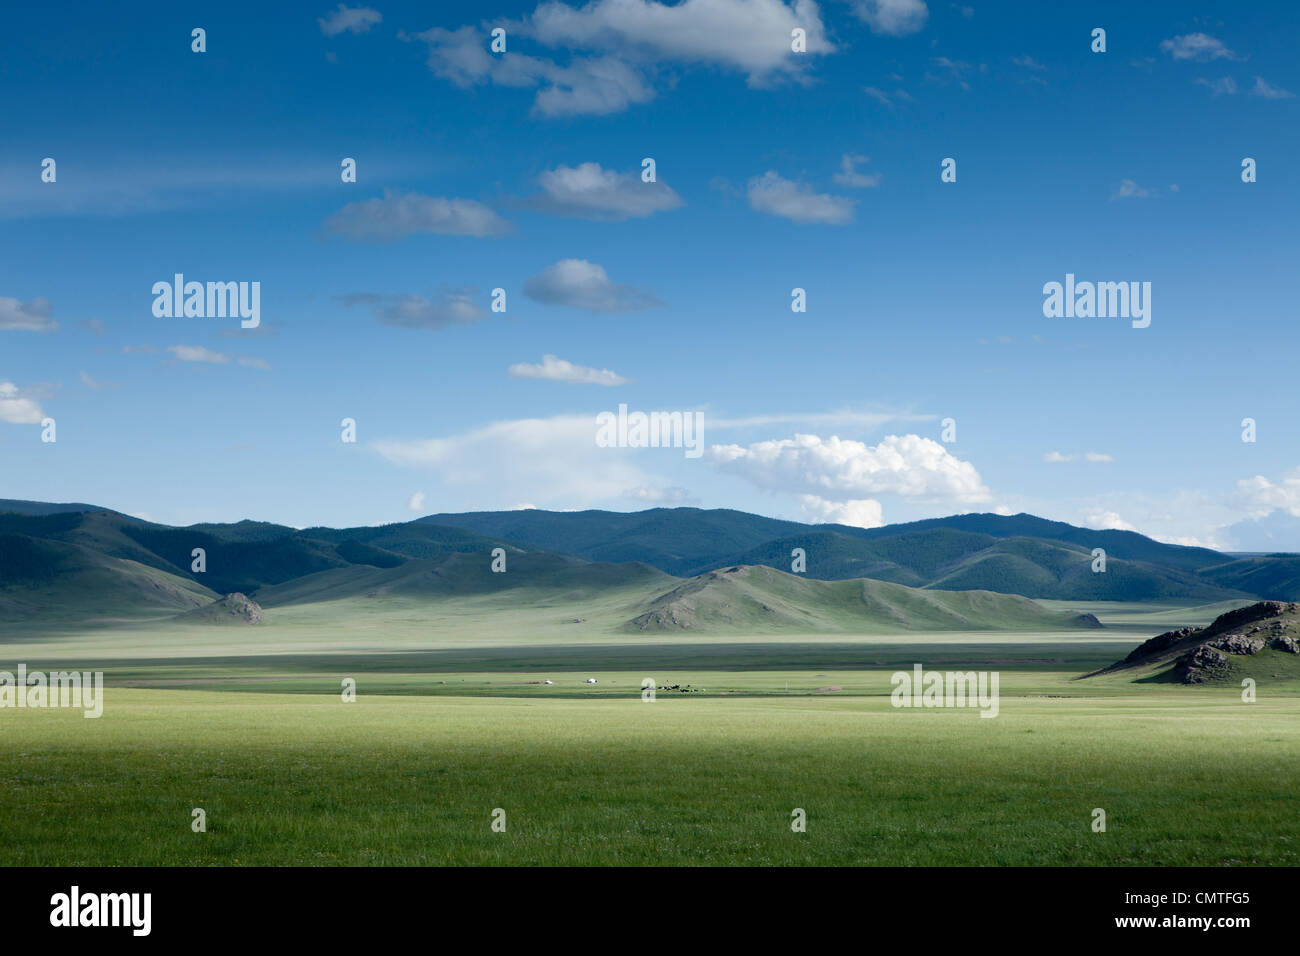 landscape of beautiful steppe in Mongolia - Stock Image